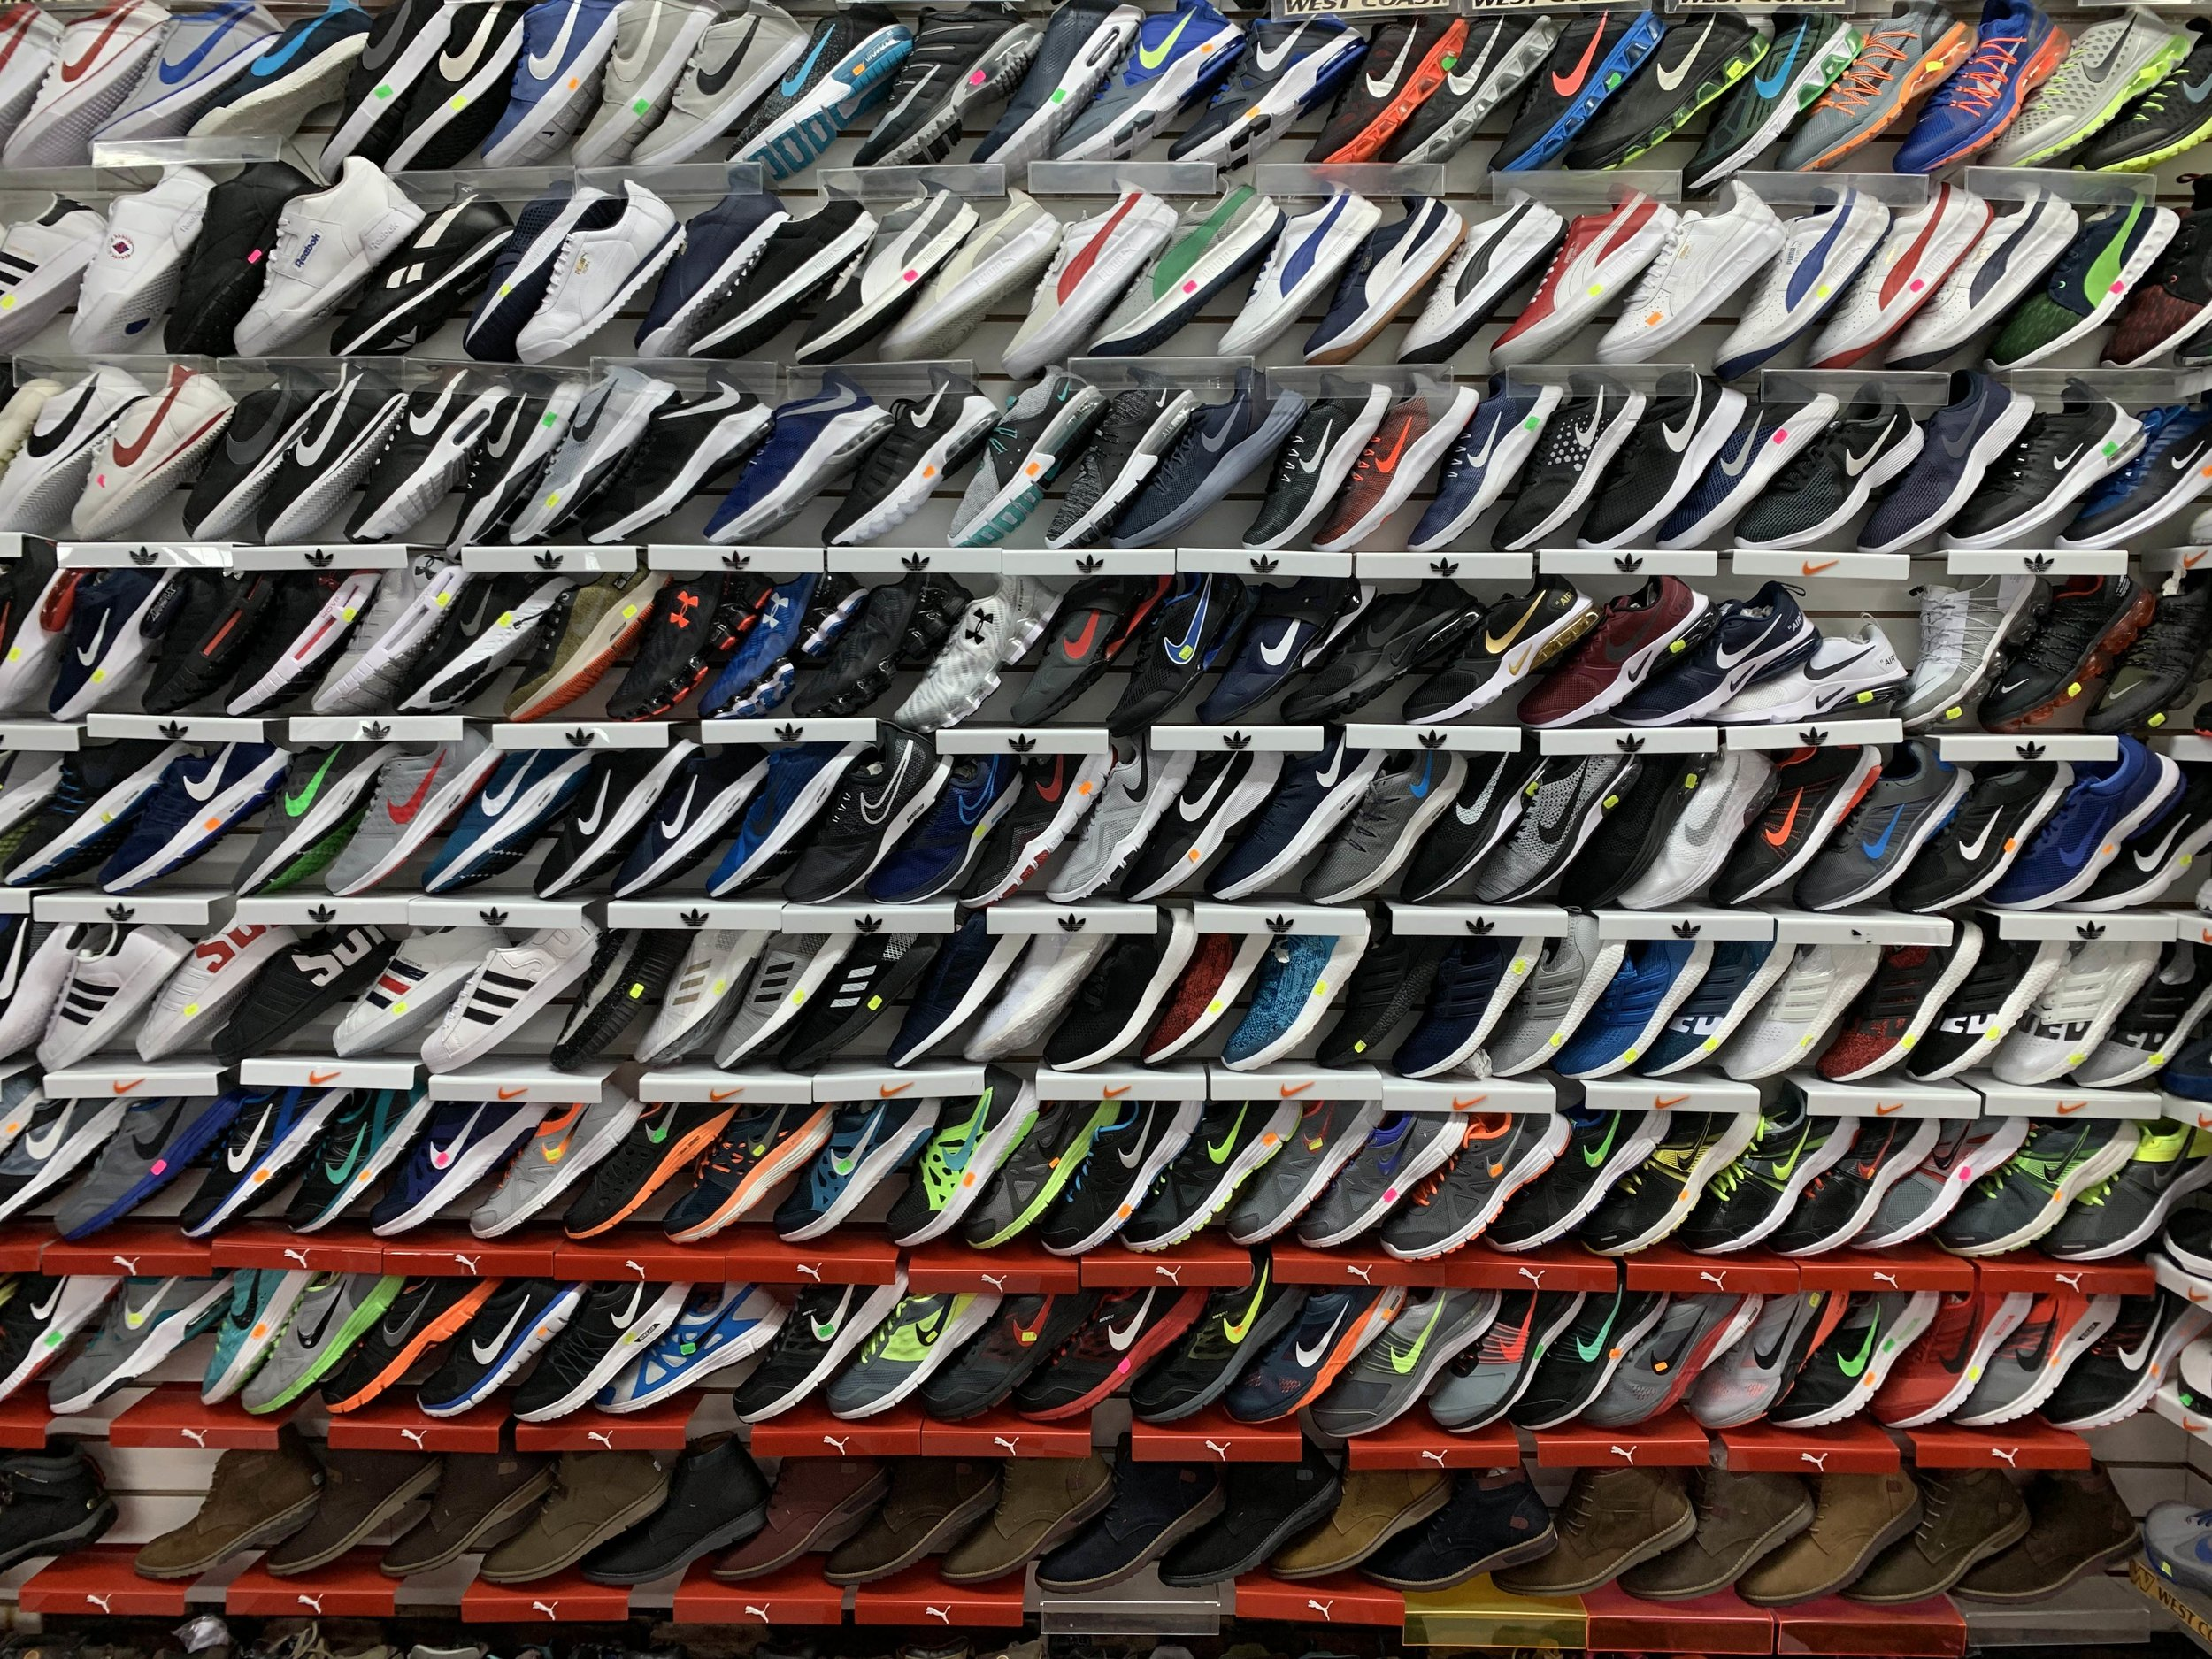 so many shoes you don't want